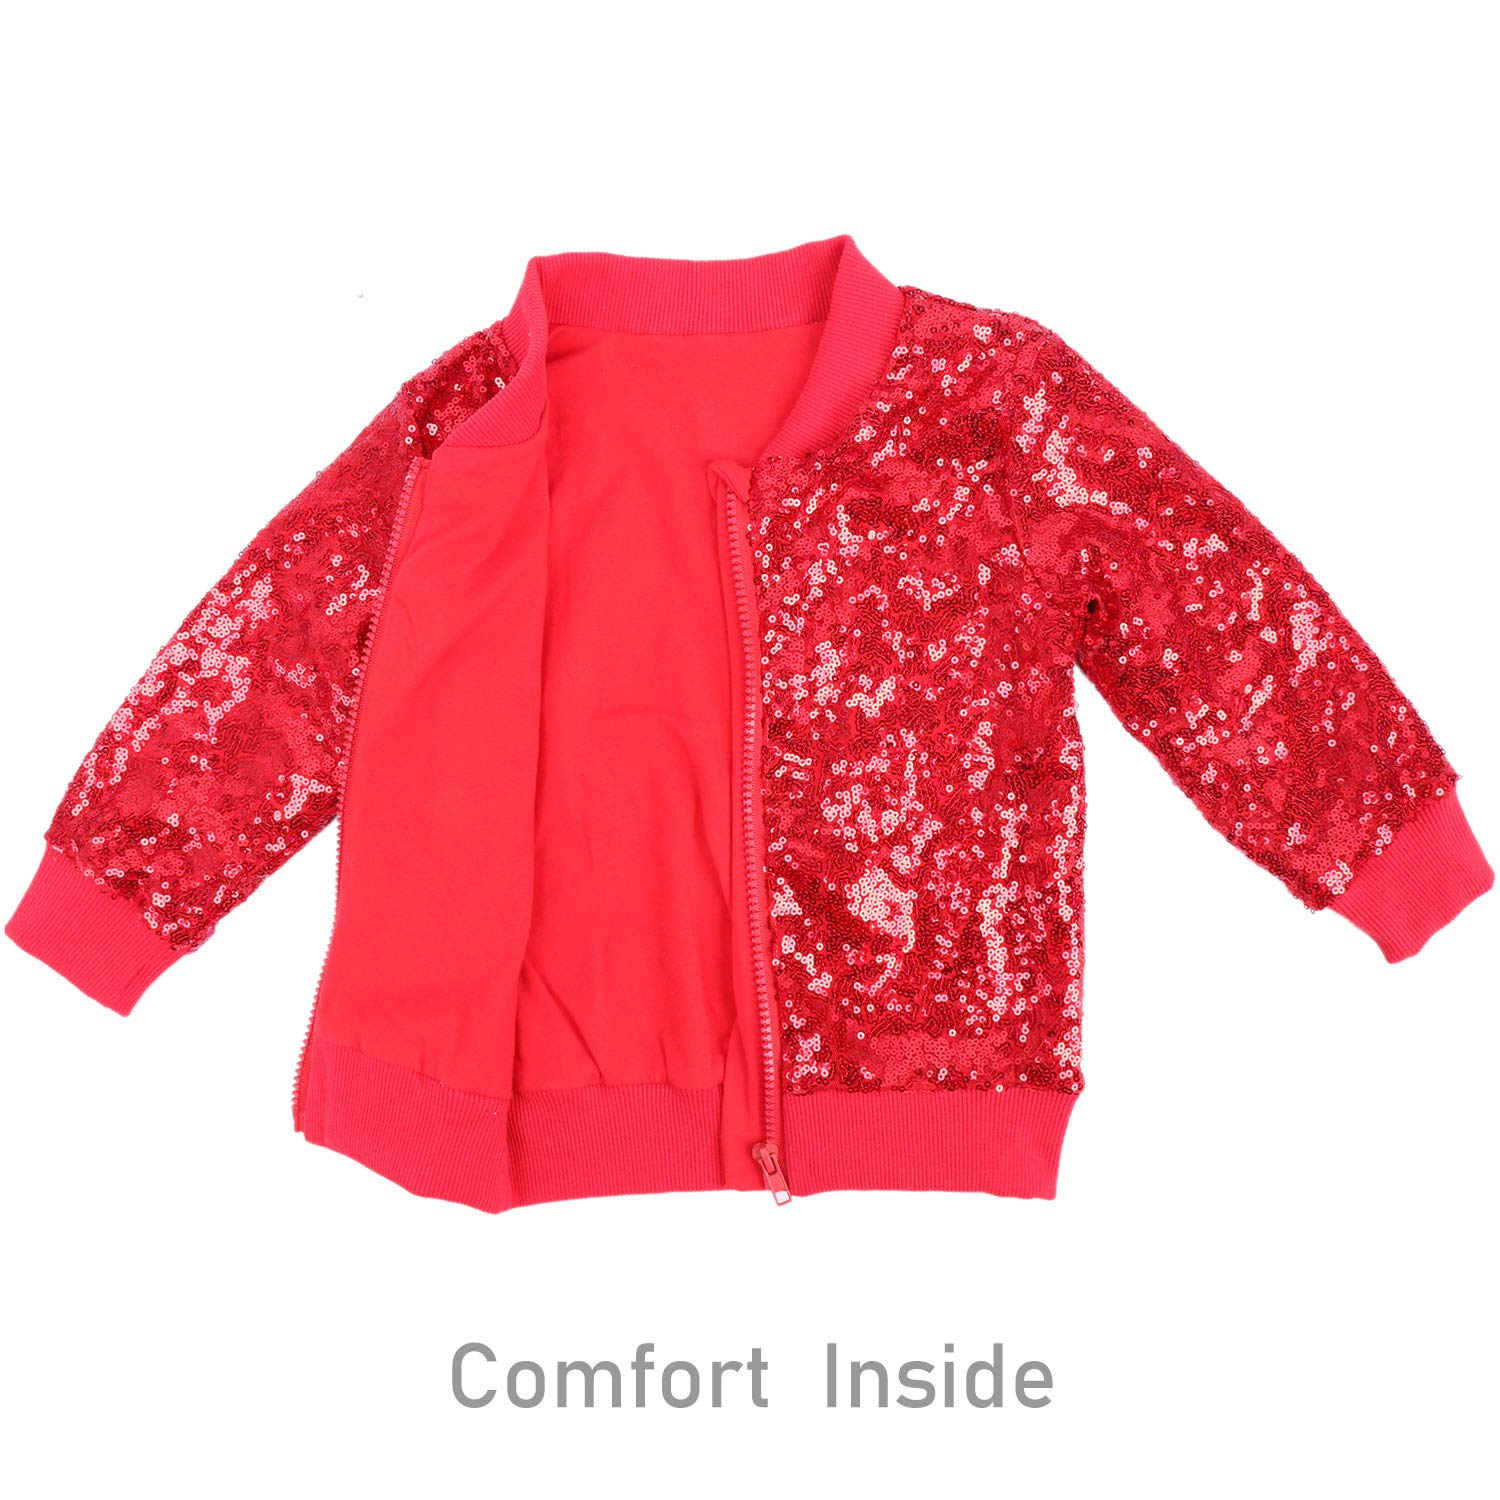 ec43a5cee Cilucu Kids Jackets Girls Boys Sequin Zipper Coat Jacket for Toddler  Birthday Christmas Clothes